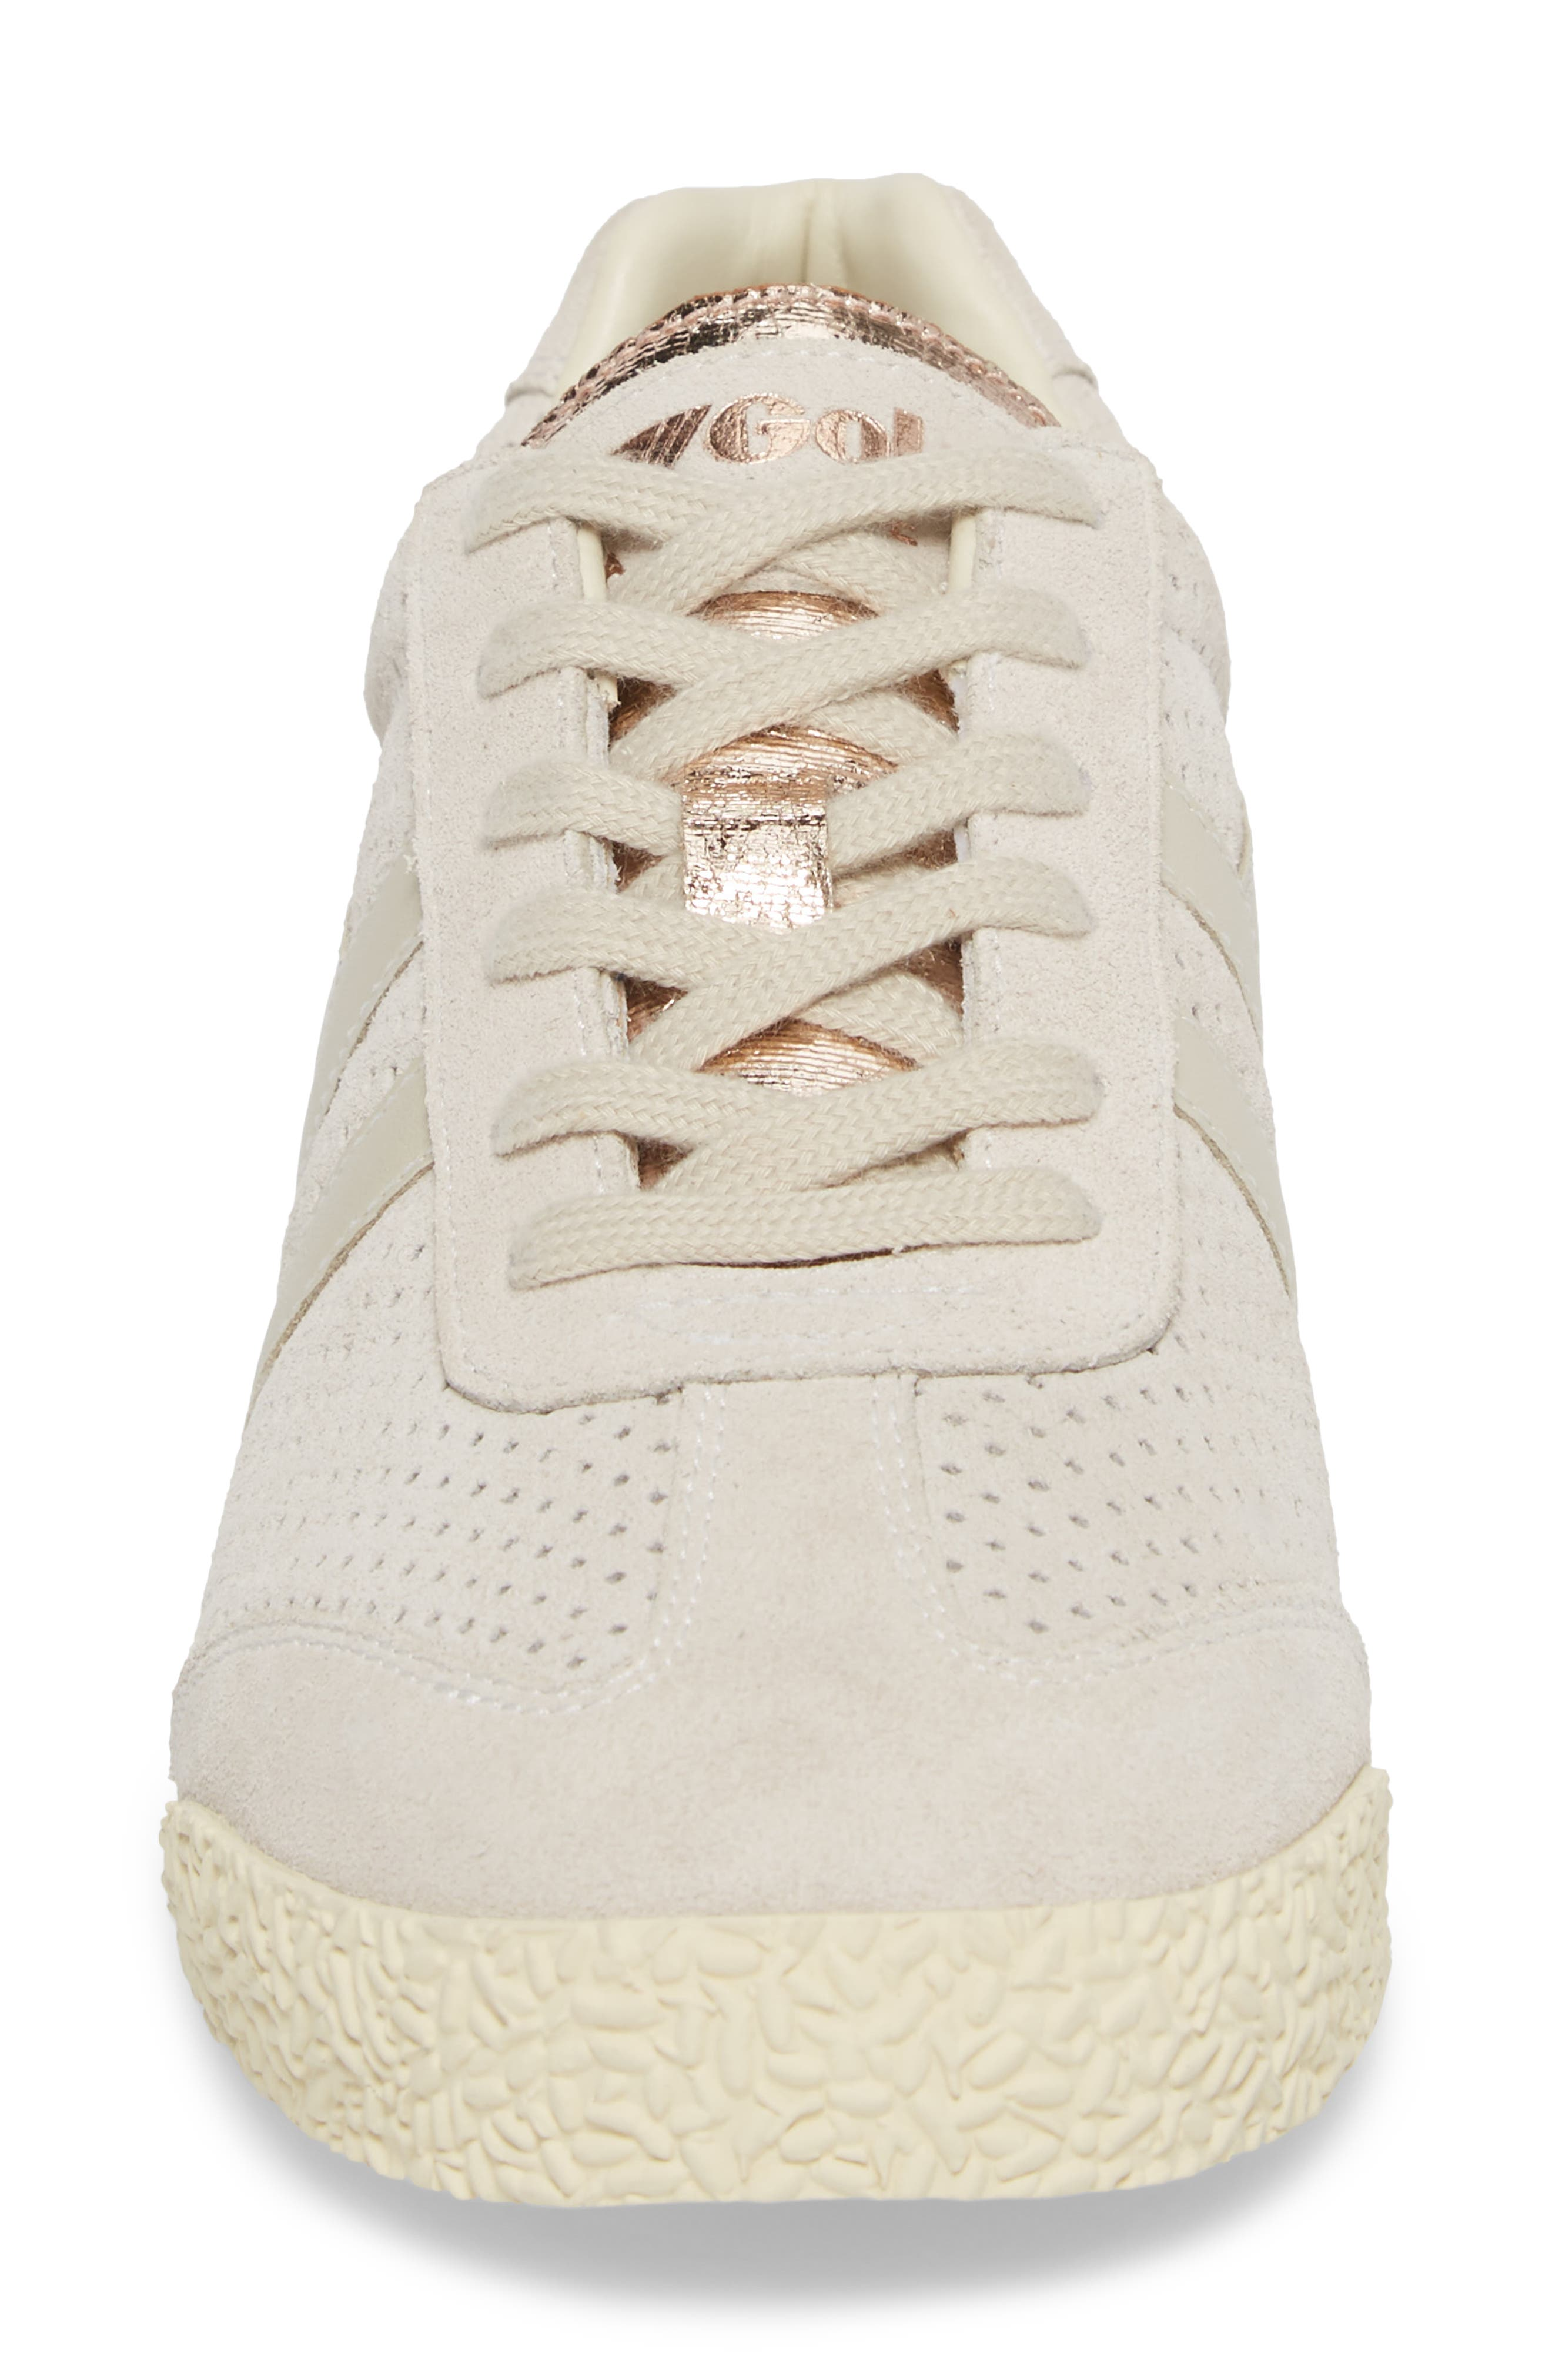 Harrier Glimmer Suede Low Top Sneaker,                             Alternate thumbnail 4, color,                             WINDCHIME/ GOLD/ OFF WHITE